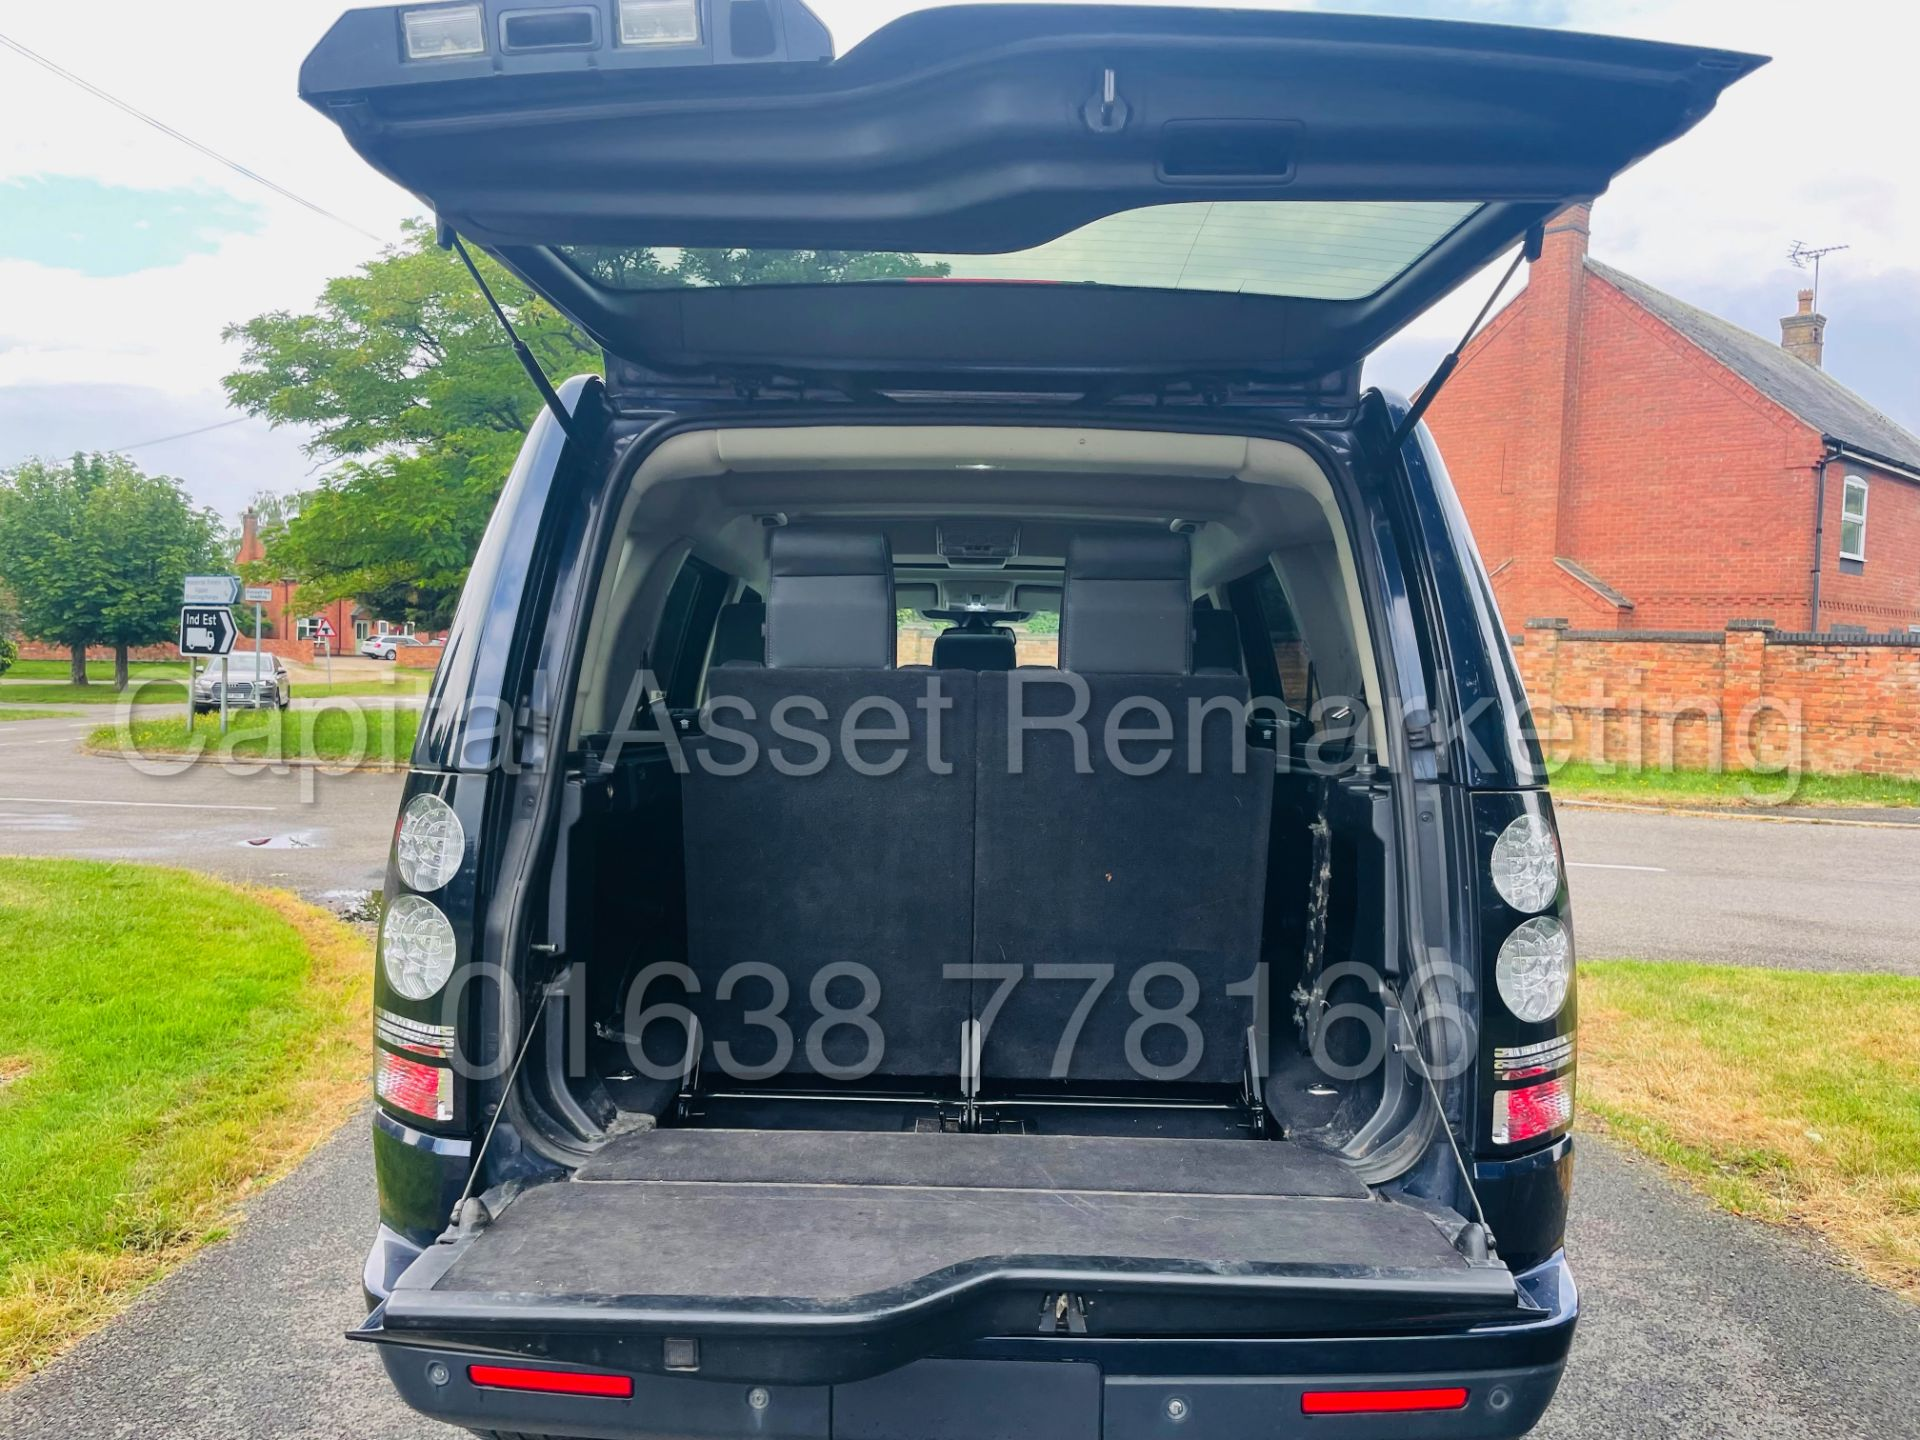 LAND ROVER DISCOVERY 4 *HSE* 7 SEATER SUV (2014 - NEW MODEL) '3.0 SDV6 - 255 BHP - 8 SPEED AUTO' - Image 31 of 61